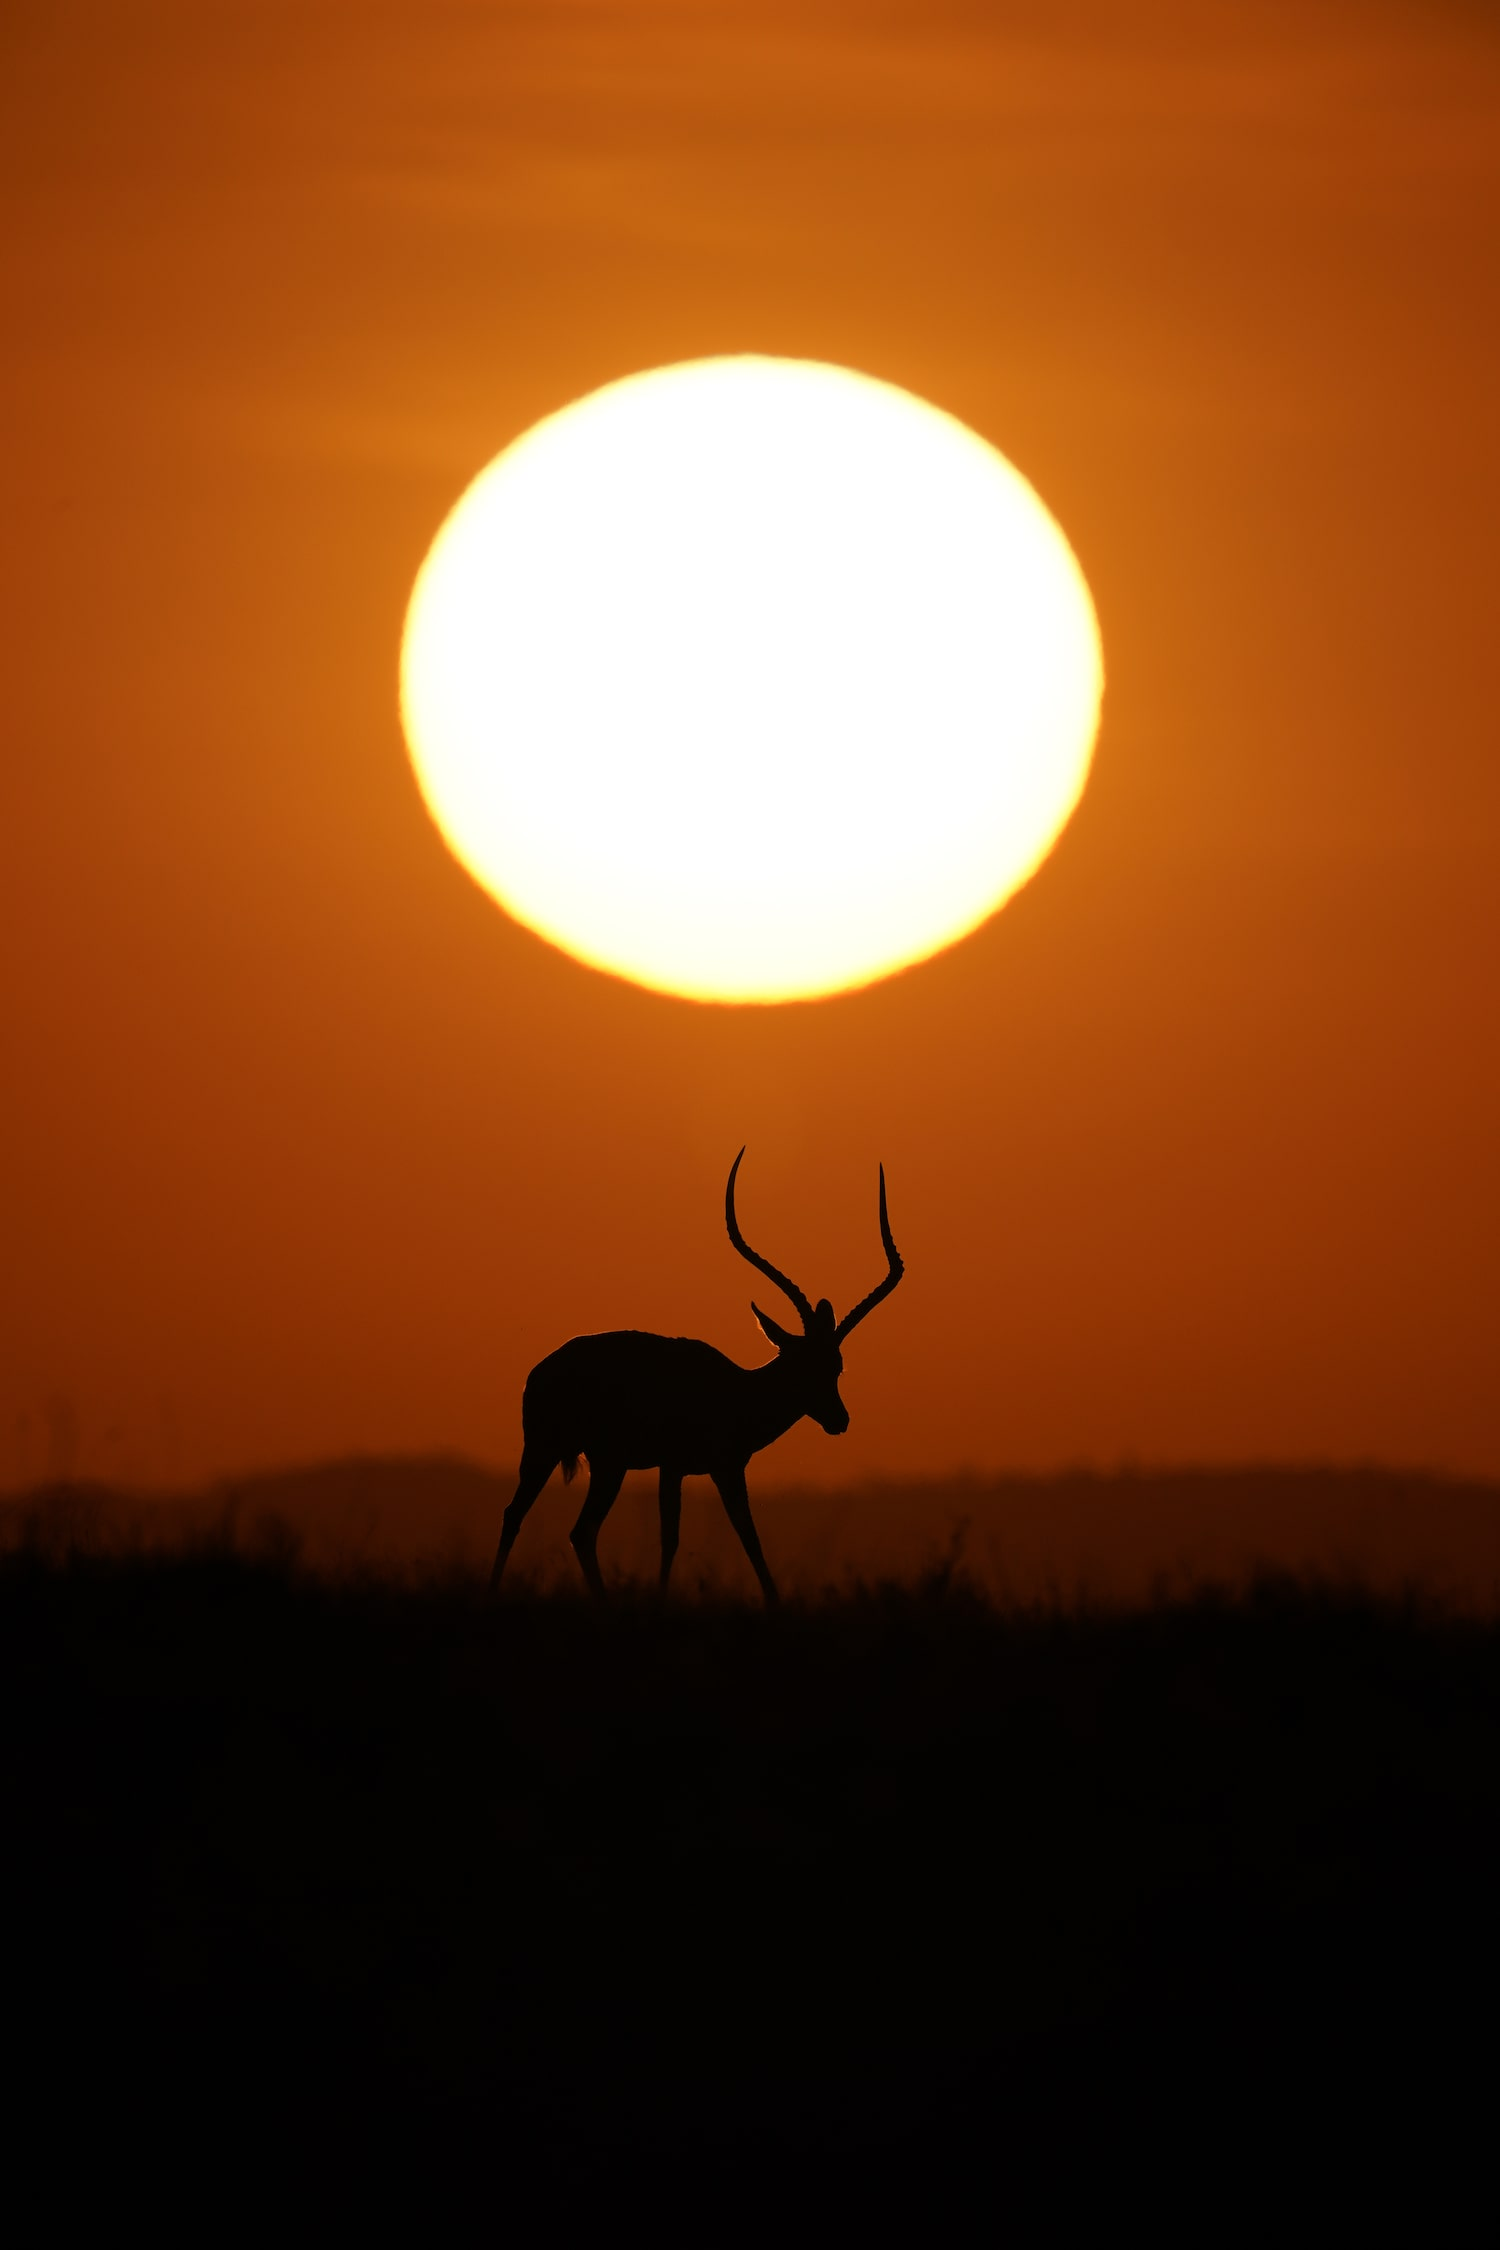 sun-about-to-set-deer-in-the-fields-alpha-9